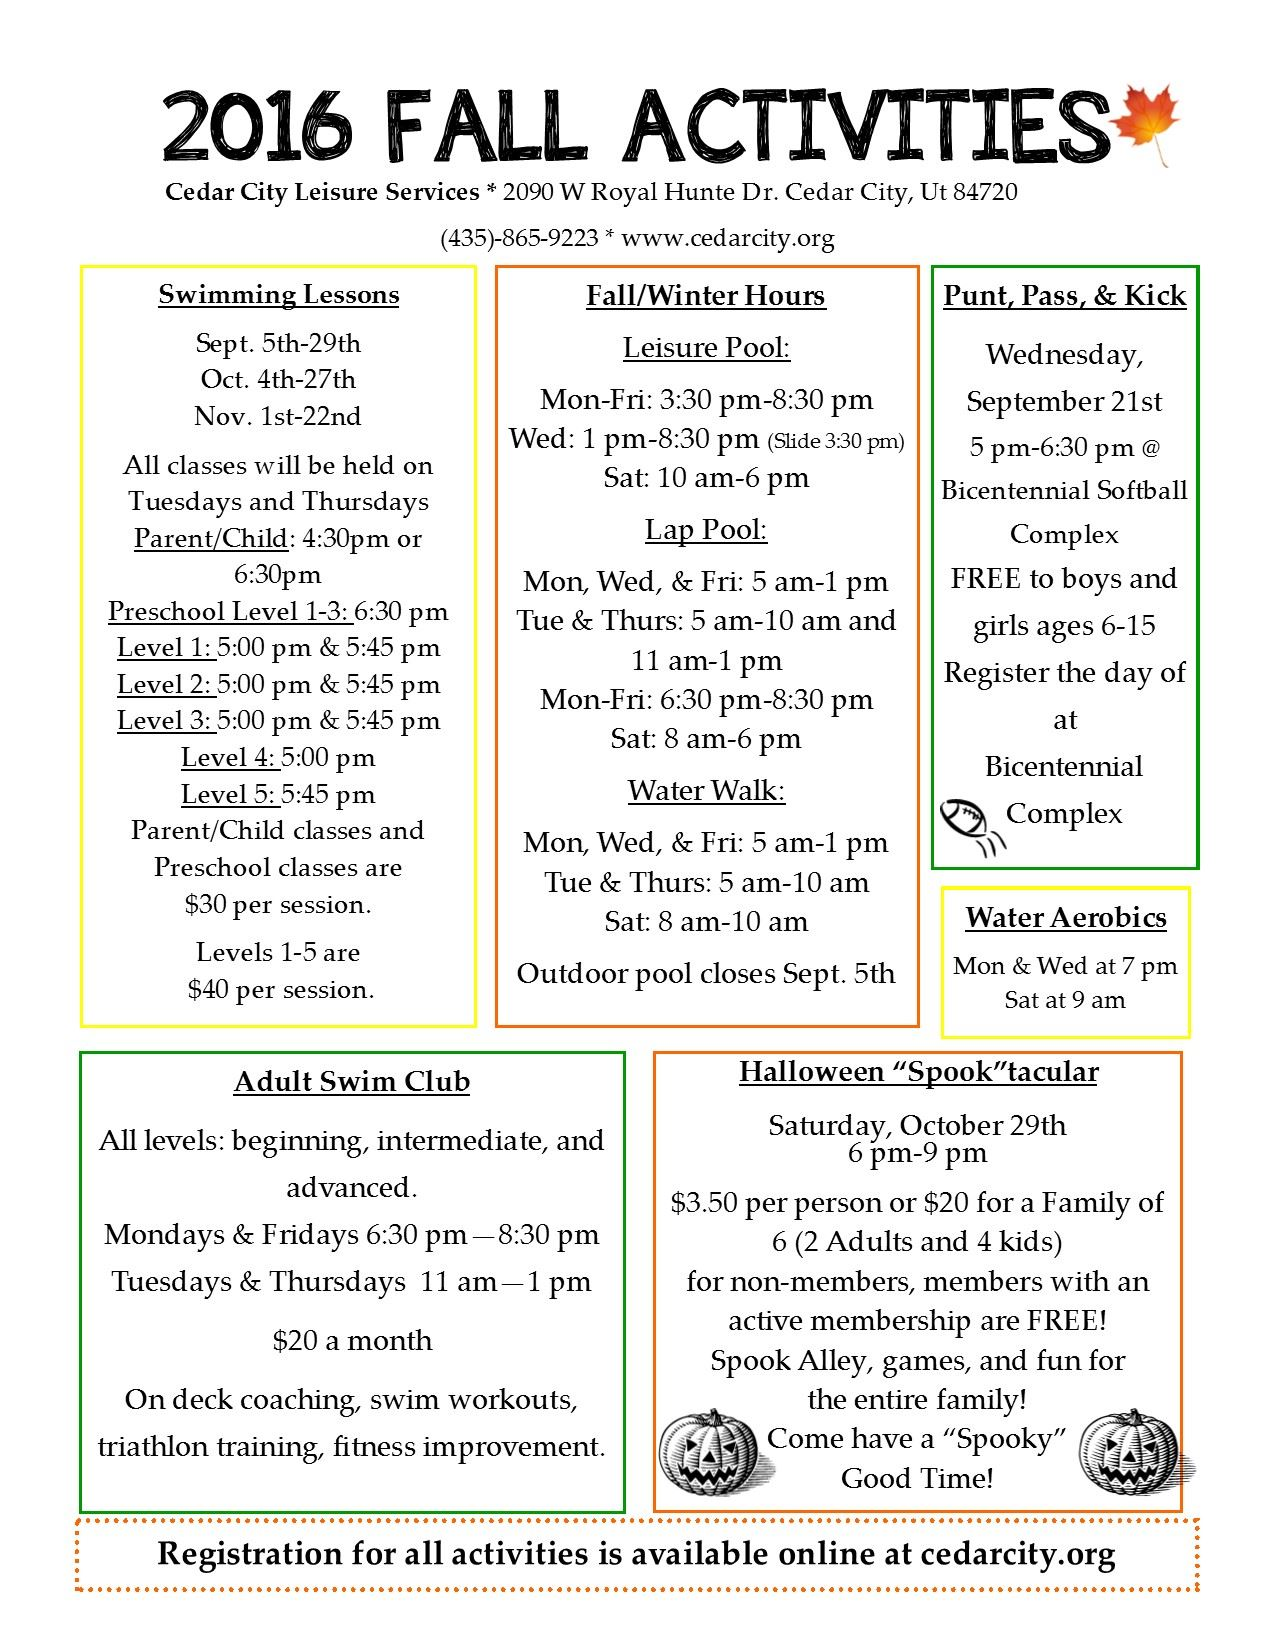 2016 Fall Activities Flyer Front